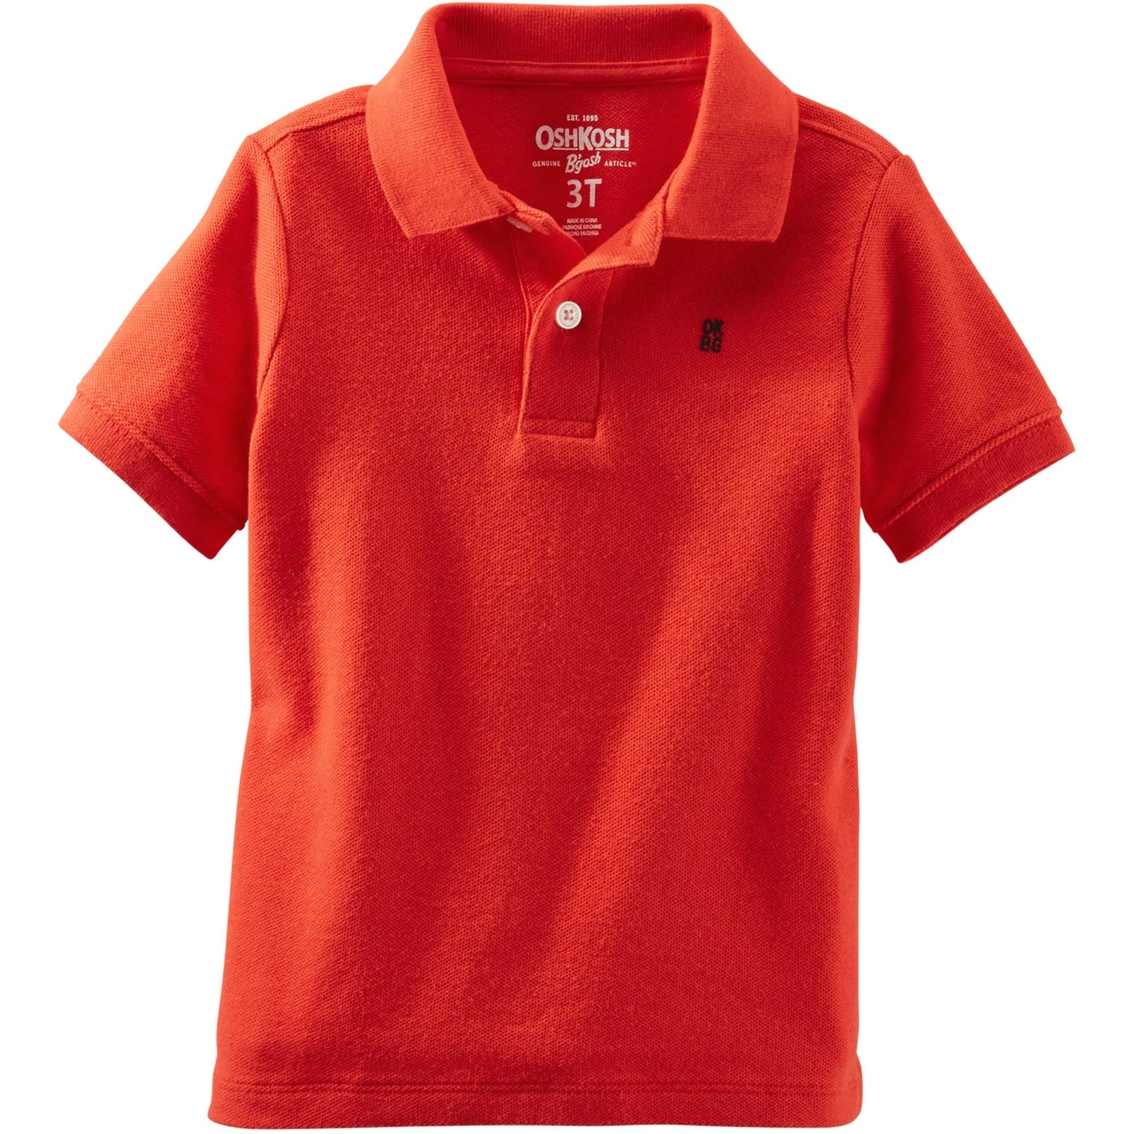 Oshkosh toddler boys jersey polo shirt shirts apparel for Toddler boys polo shirts